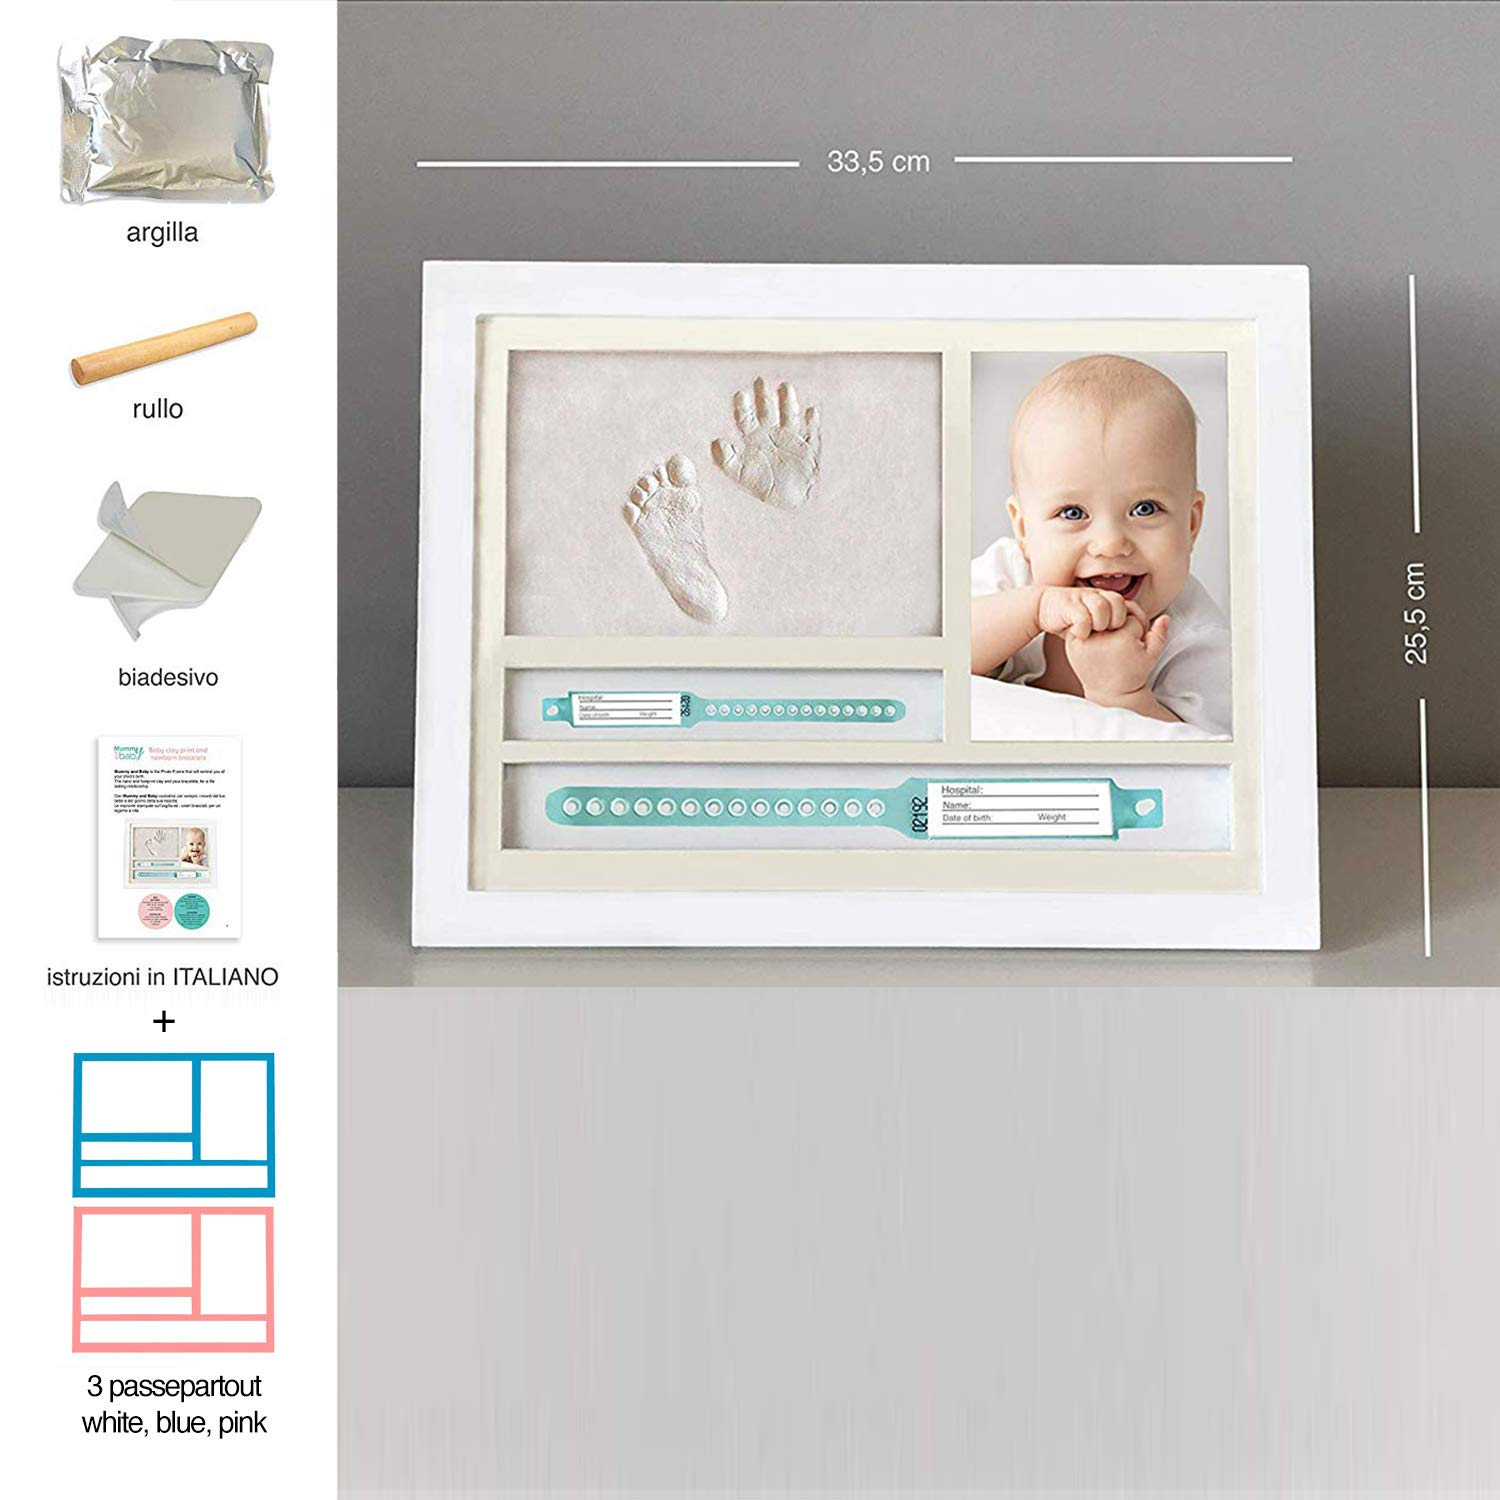 keepsake Baby Photo Album for Shower Registry MUBY Box Decorations for Room Wall Nursery Decor Baby Handprint and Footprint Photo Frame kit with NEWBORN BRACELETS SPOTS for Girls and Boys